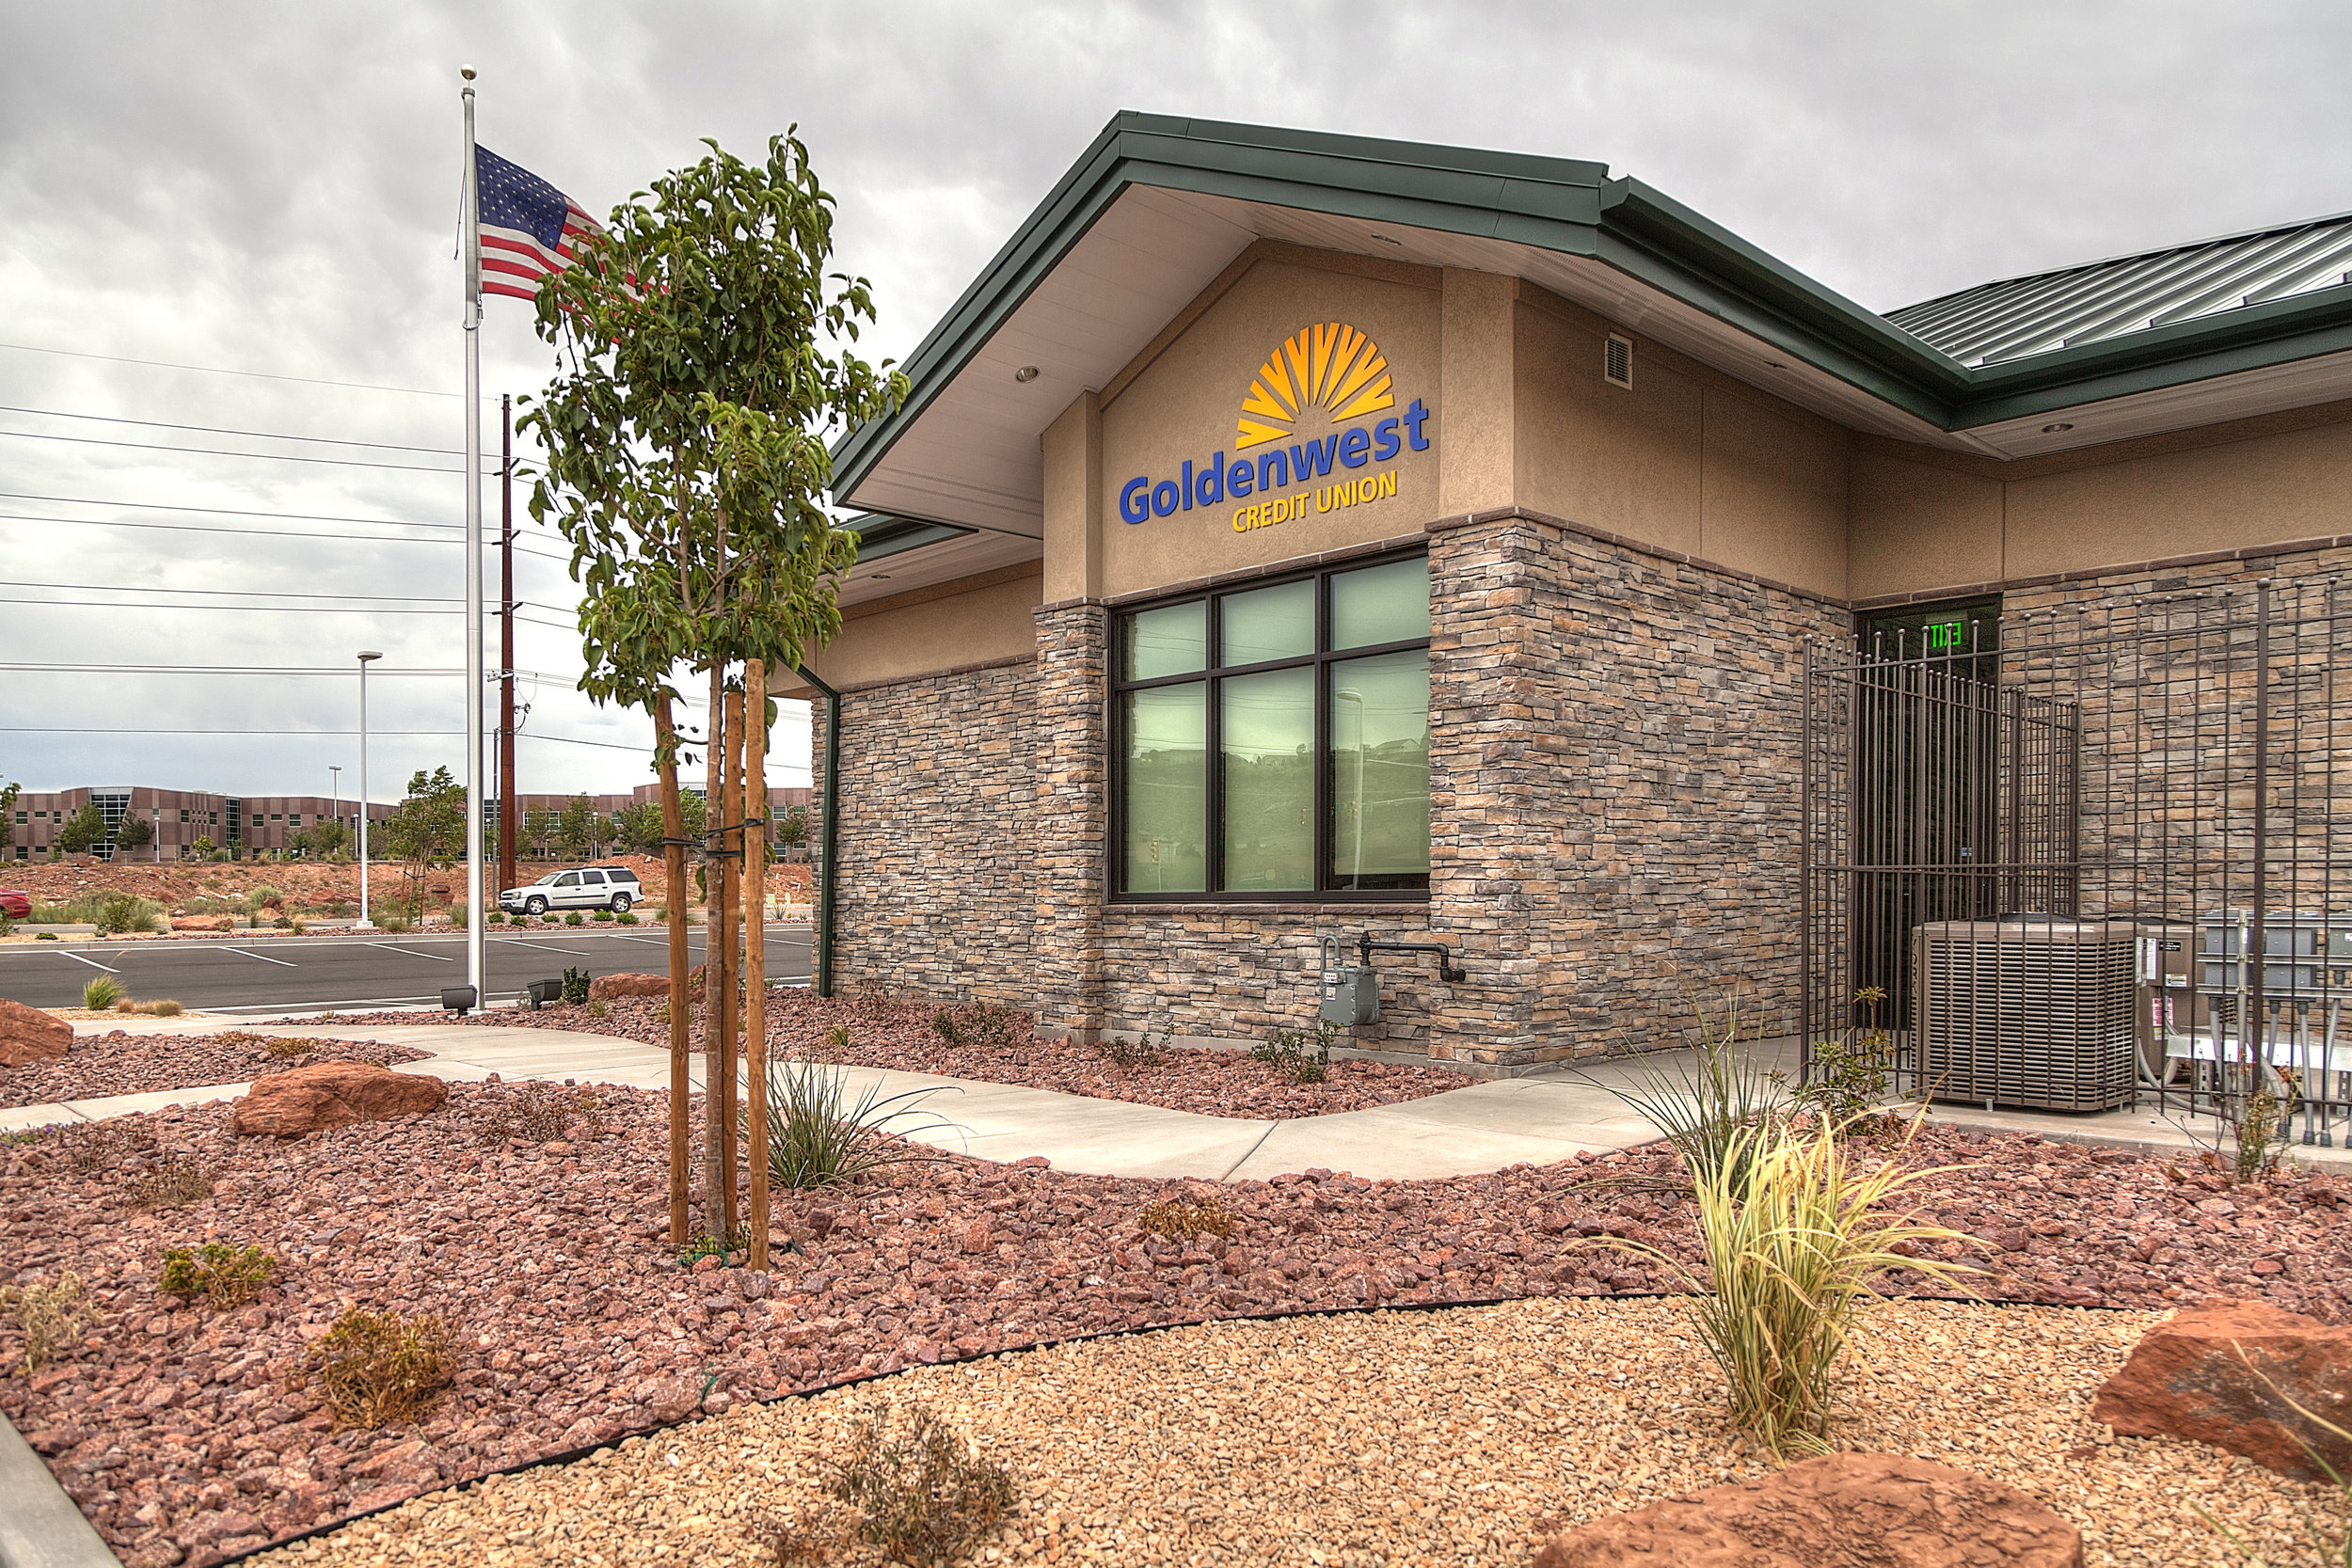 GOLDENWEST CREDIT UNION - ST. GEORGE BRANCH